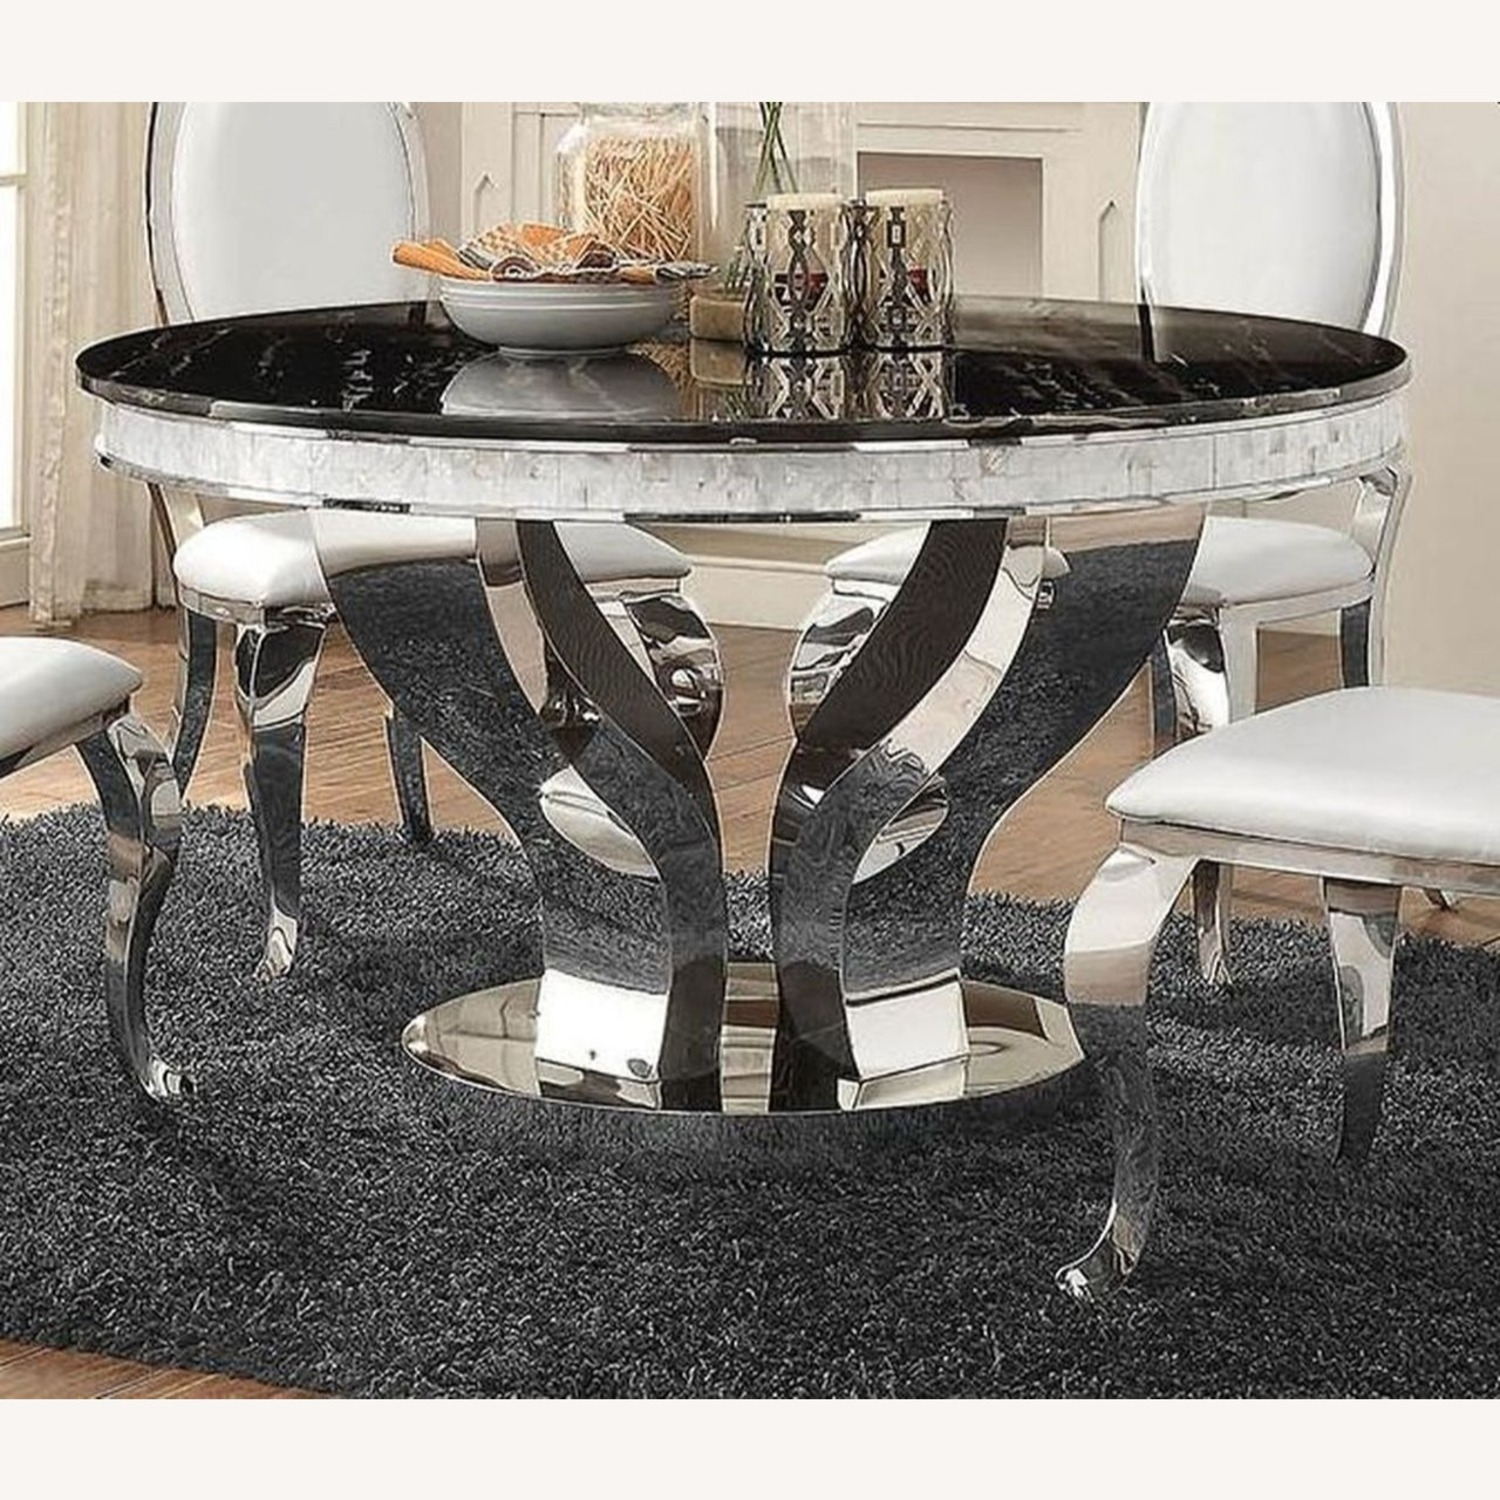 Contemporary Dining Table In Glossy Chrome Finish - image-1